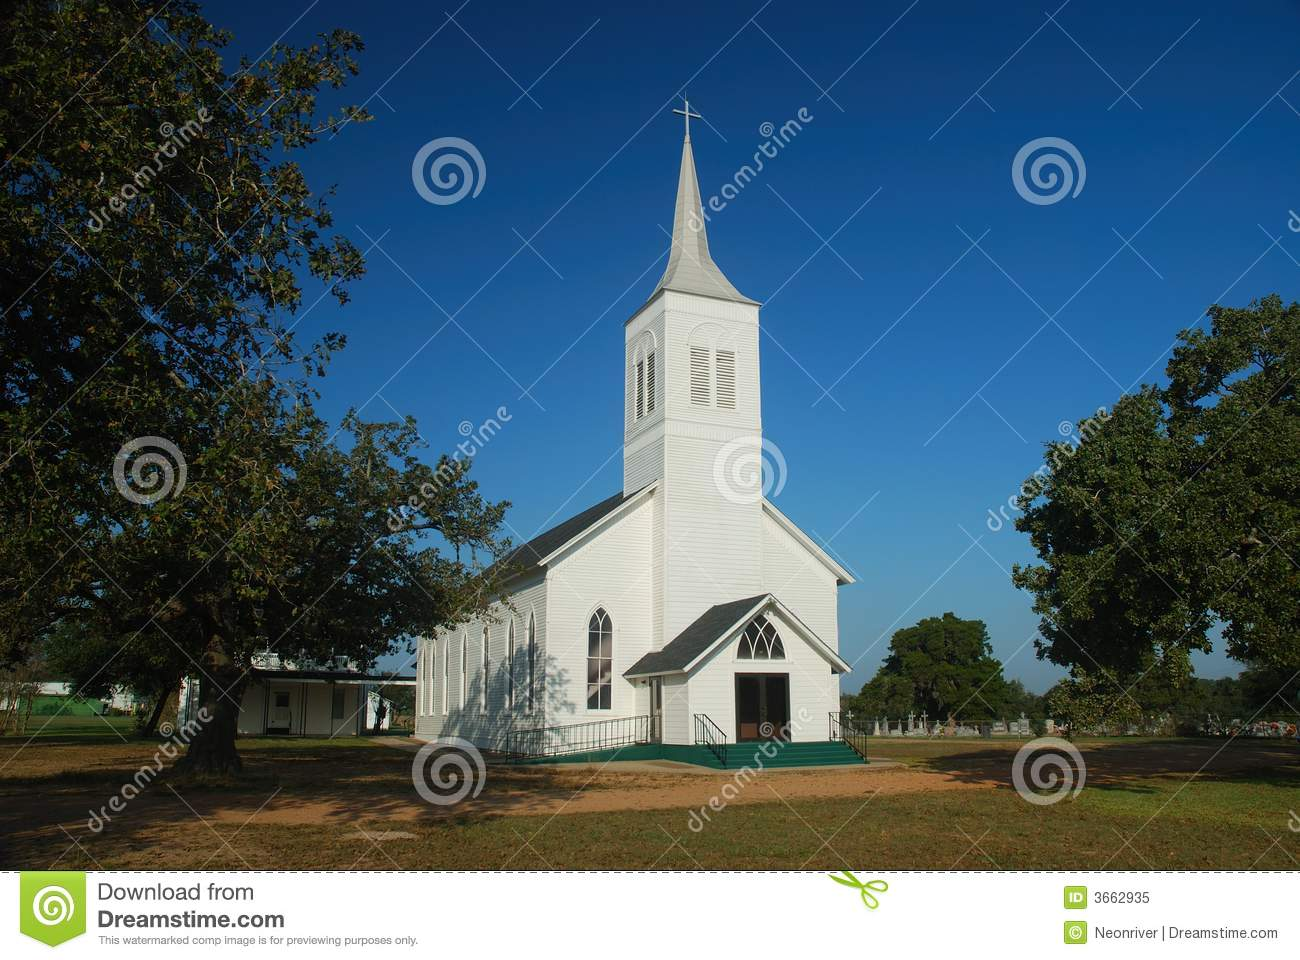 Country church is the focal point of the church ground and cemetry